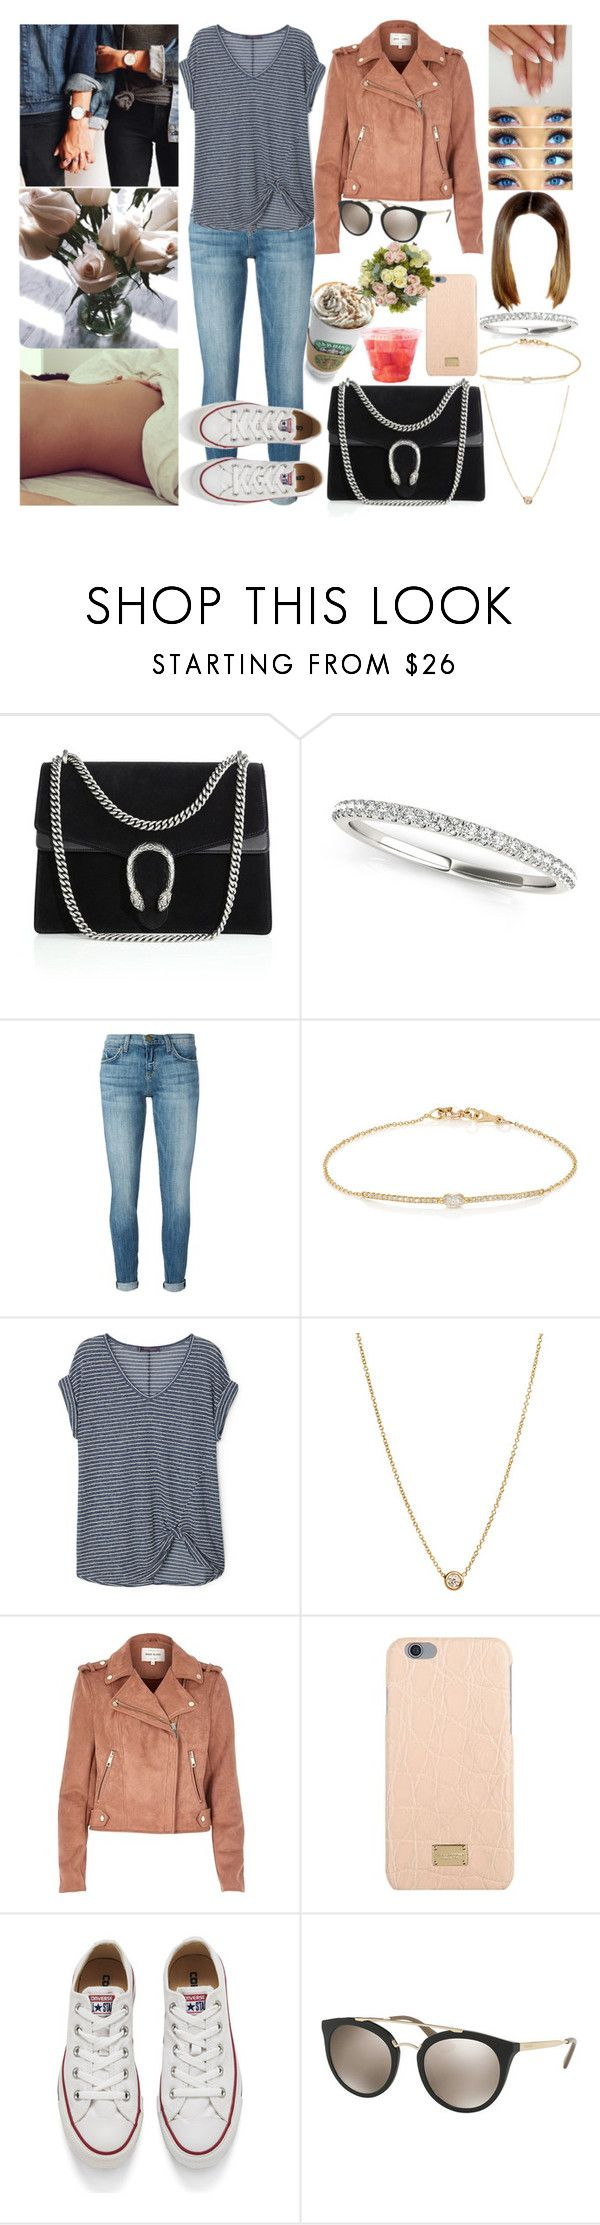 """#OC🏡"" by ally-xcv ❤ liked on Polyvore featuring Gucci, Current/Elliott, Tate, Violeta by Mango, ZoÃ« Chicco, River Island, Dolce&Gabbana, Converse and Prada"